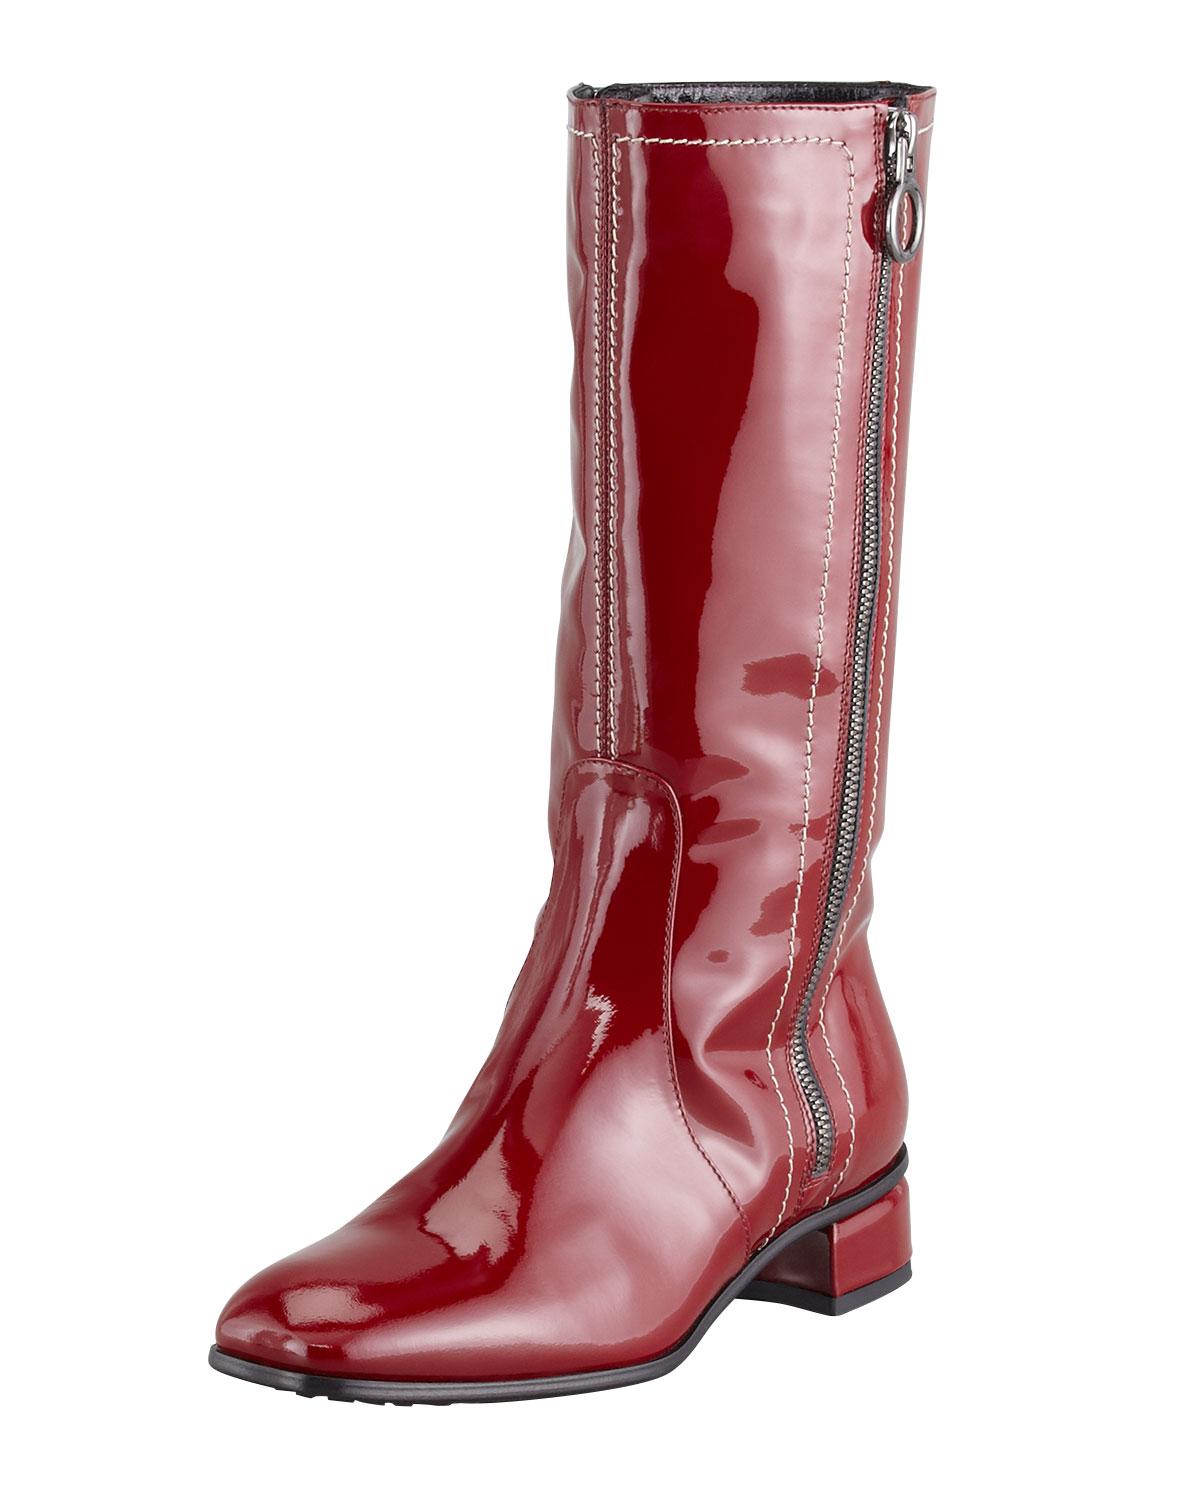 Red Boots Women 6C0tonLN